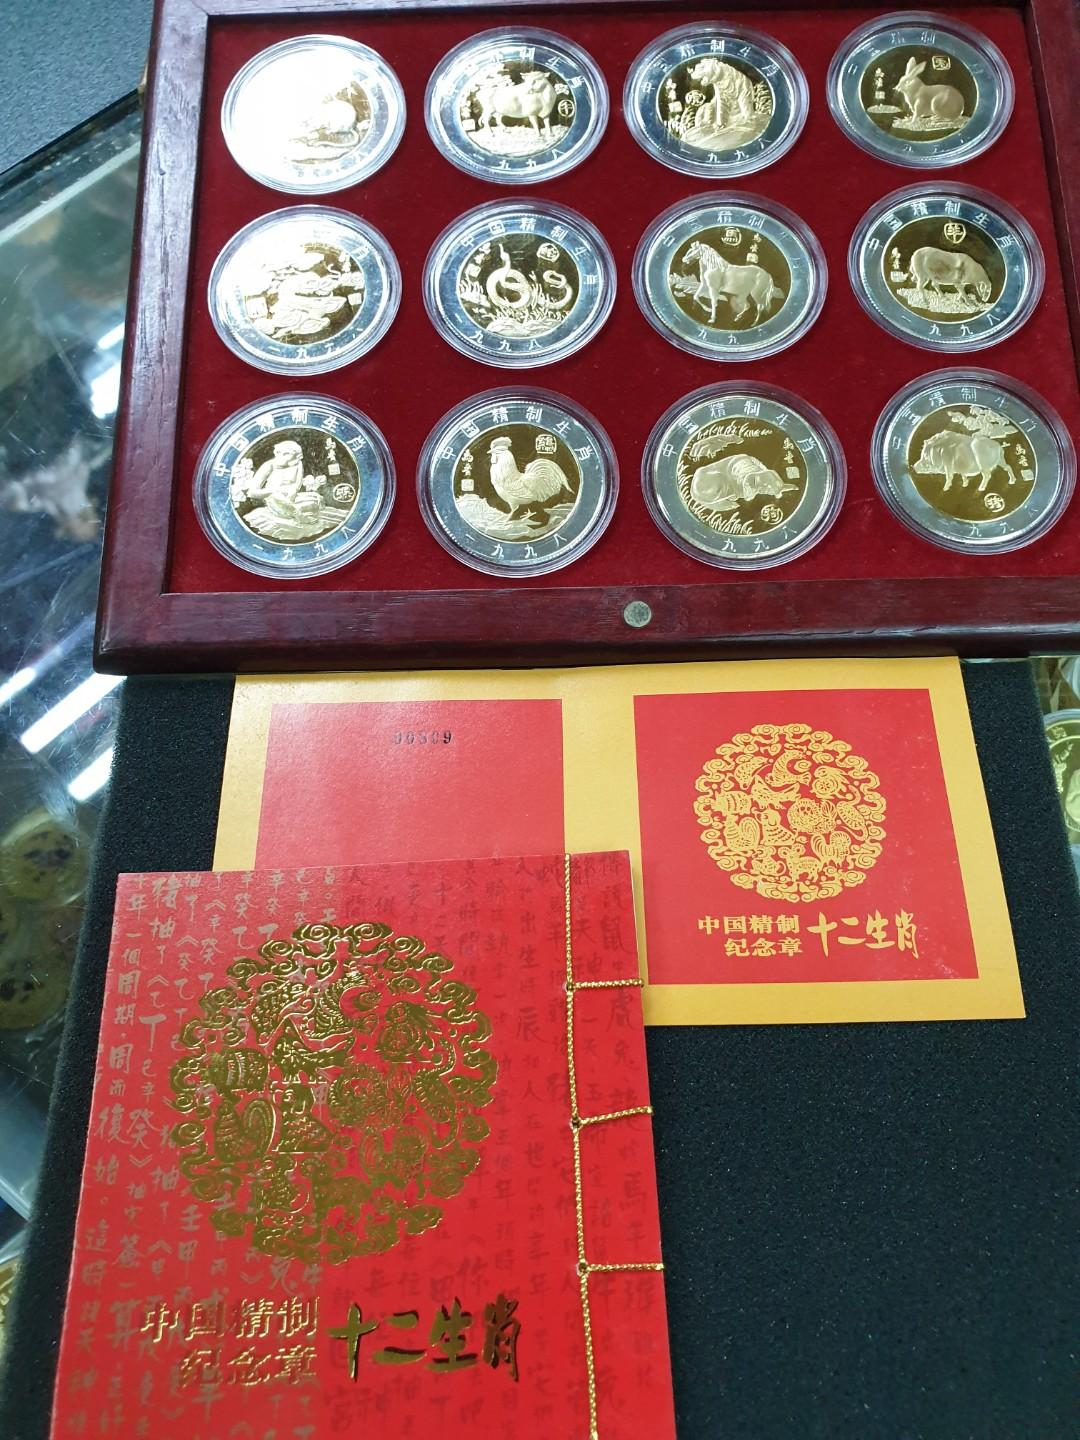 1993 Chinese zodiac, Vintage & Collectibles, Vintage